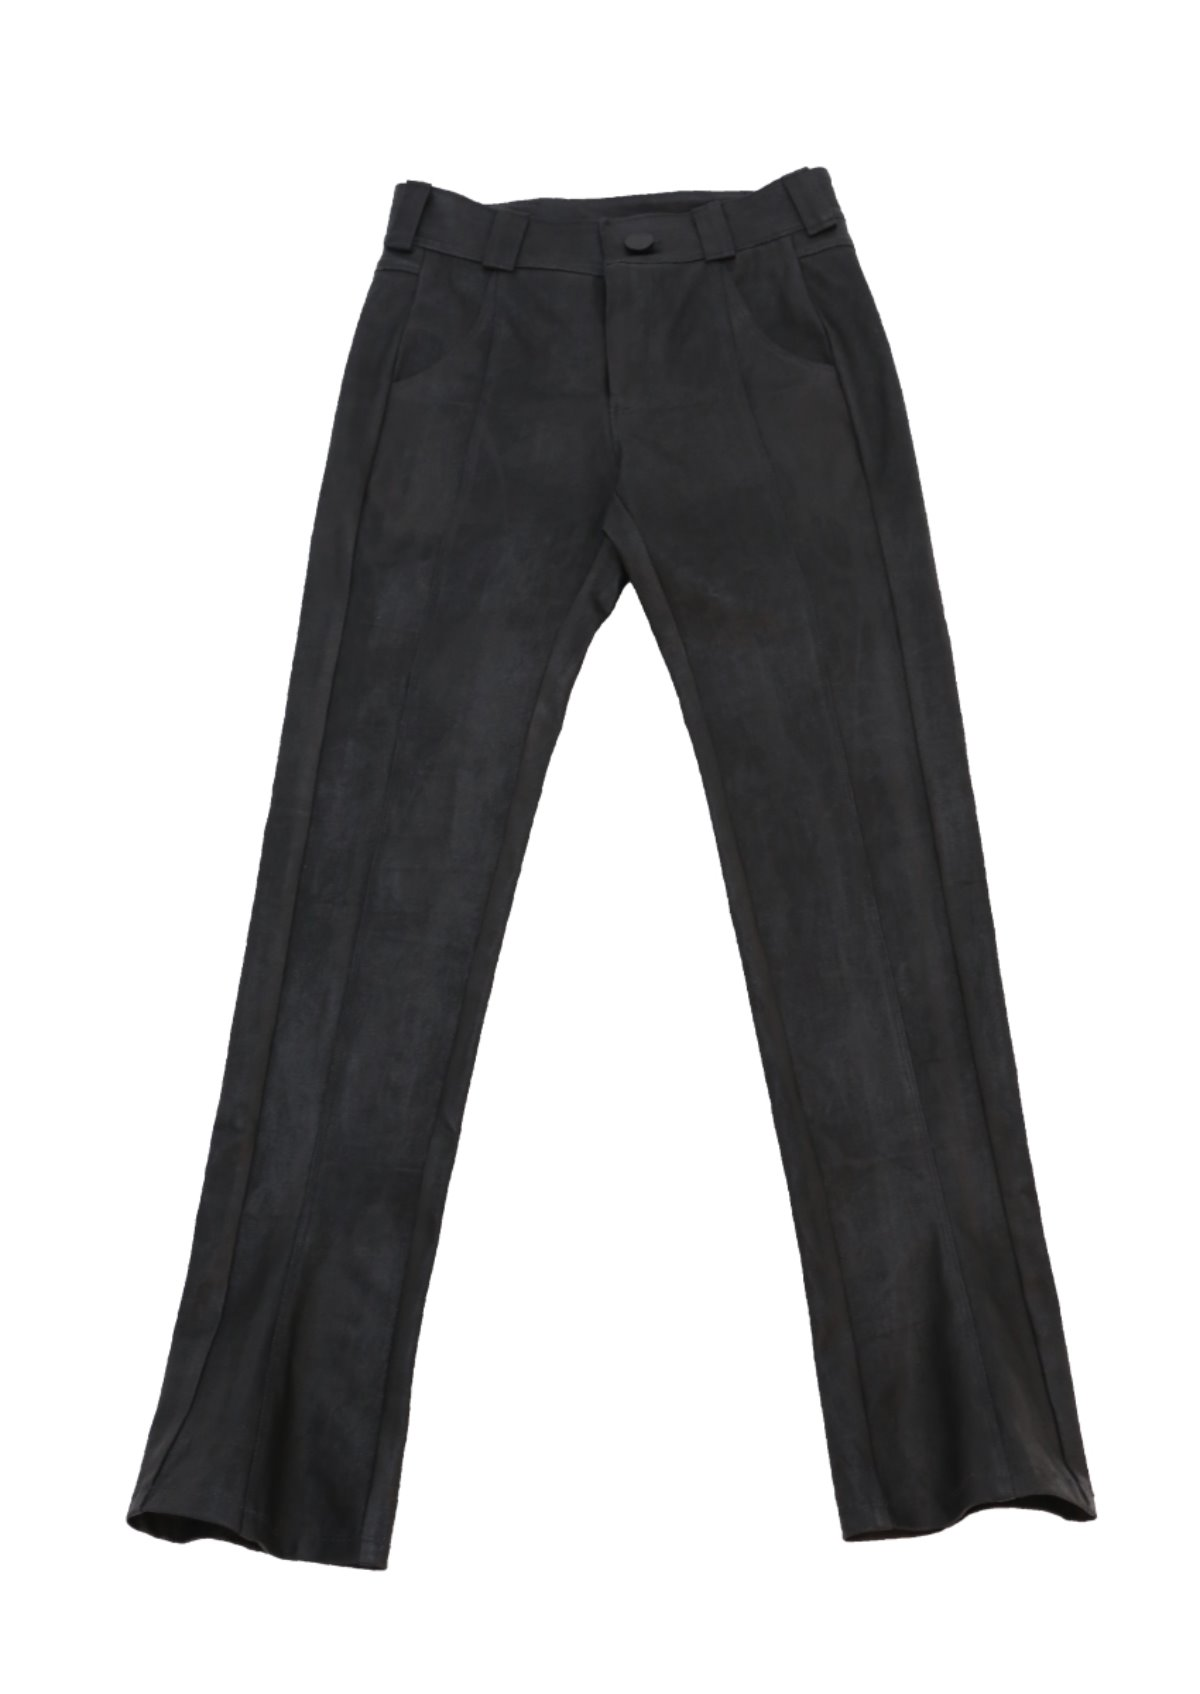 LEATHER LIKE COATED DENIM PANT